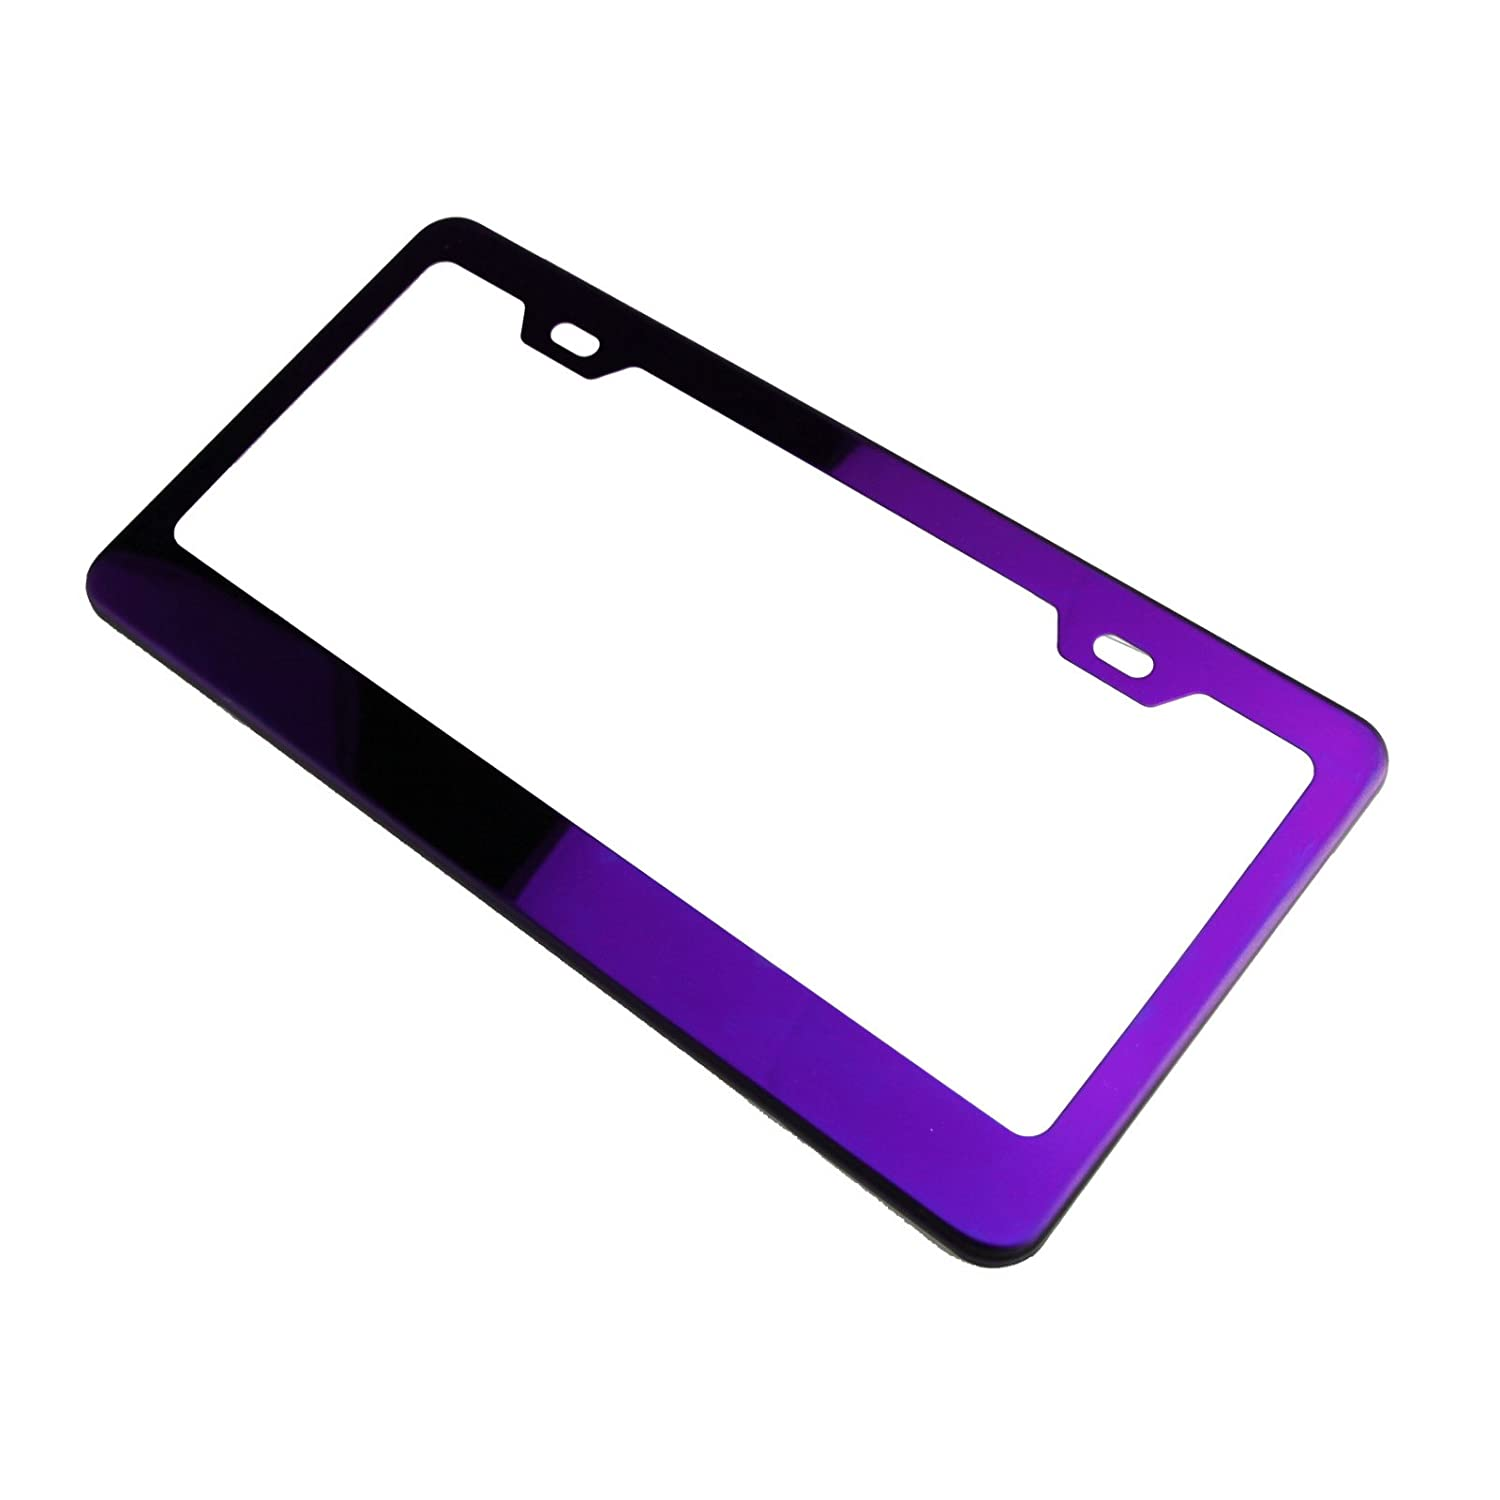 Polish Purple Chrome T304 Stainless Steel License Plate Frame Holder Front Or Rear Bracket with Aluminum Screw Cap